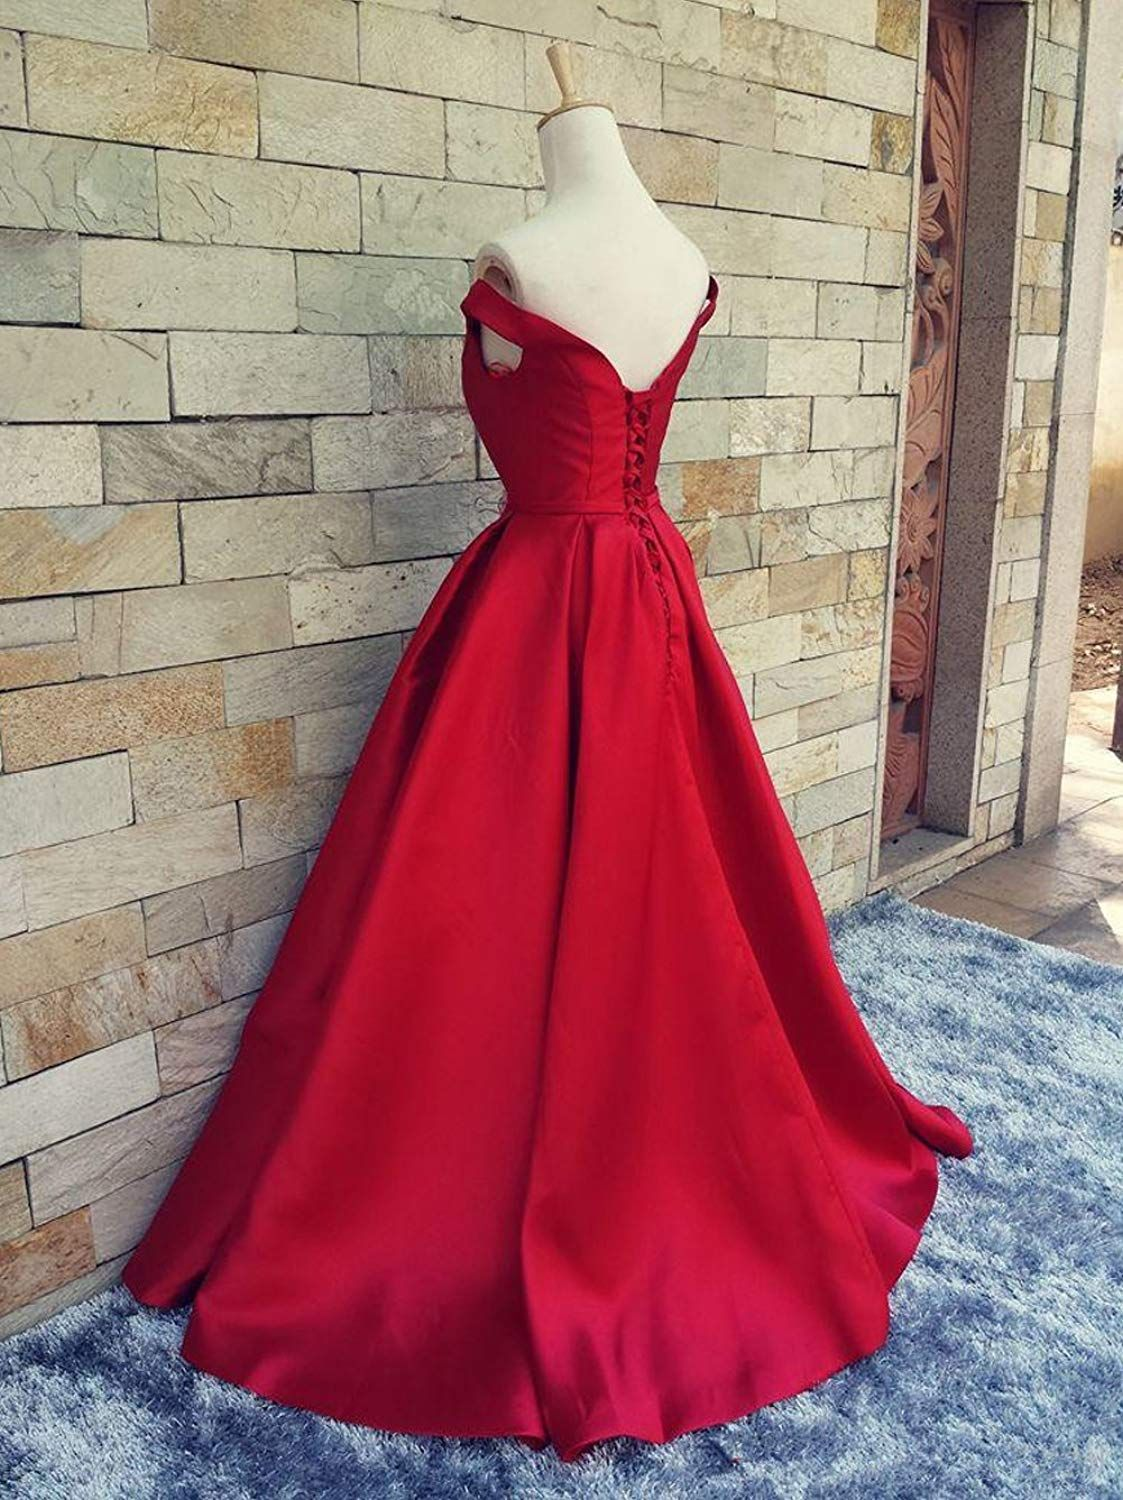 Selenova womenus off the shoulder aline evening ball gowns with bow